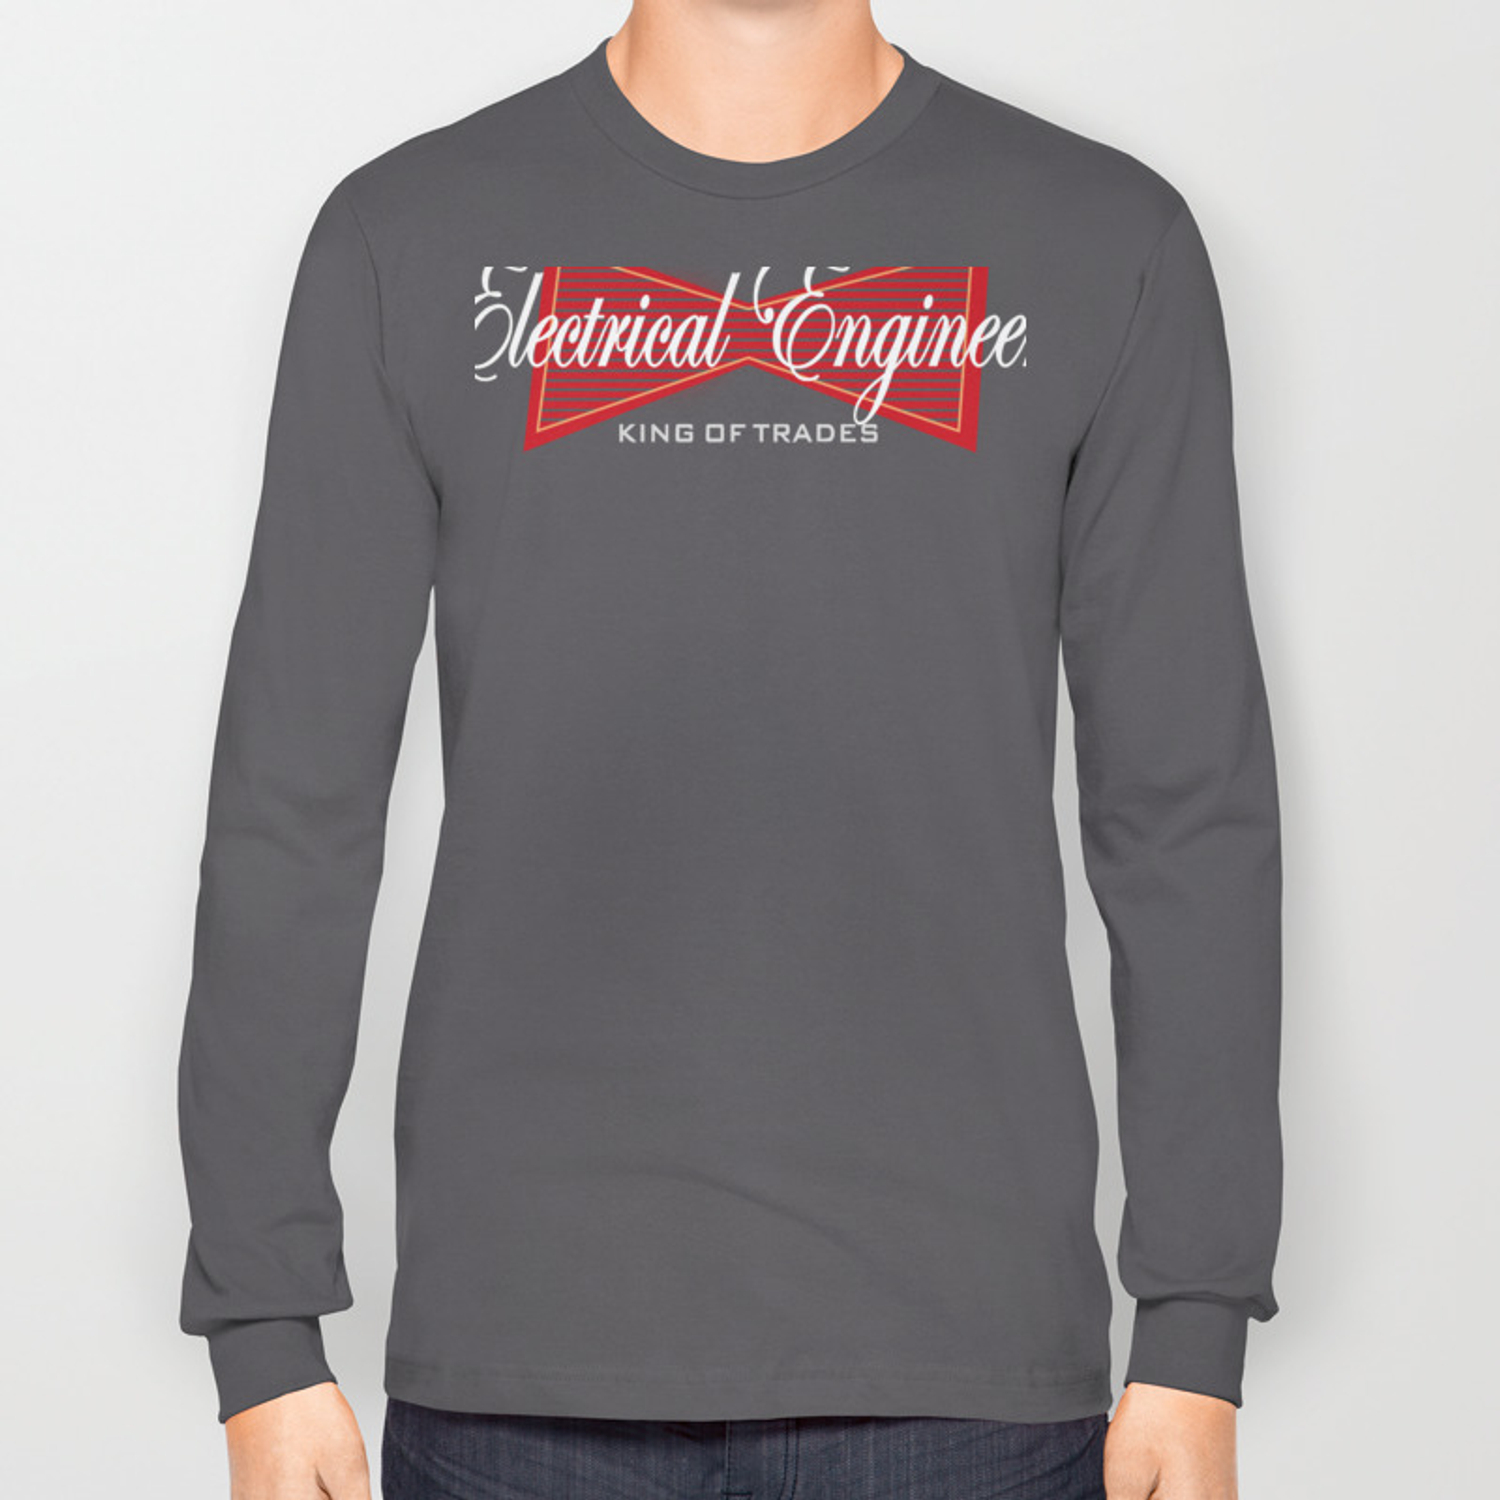 4d1fce00 Funny Electrical Engineer Engineering Long Sleeve T-shirt by kayelex |  Society6